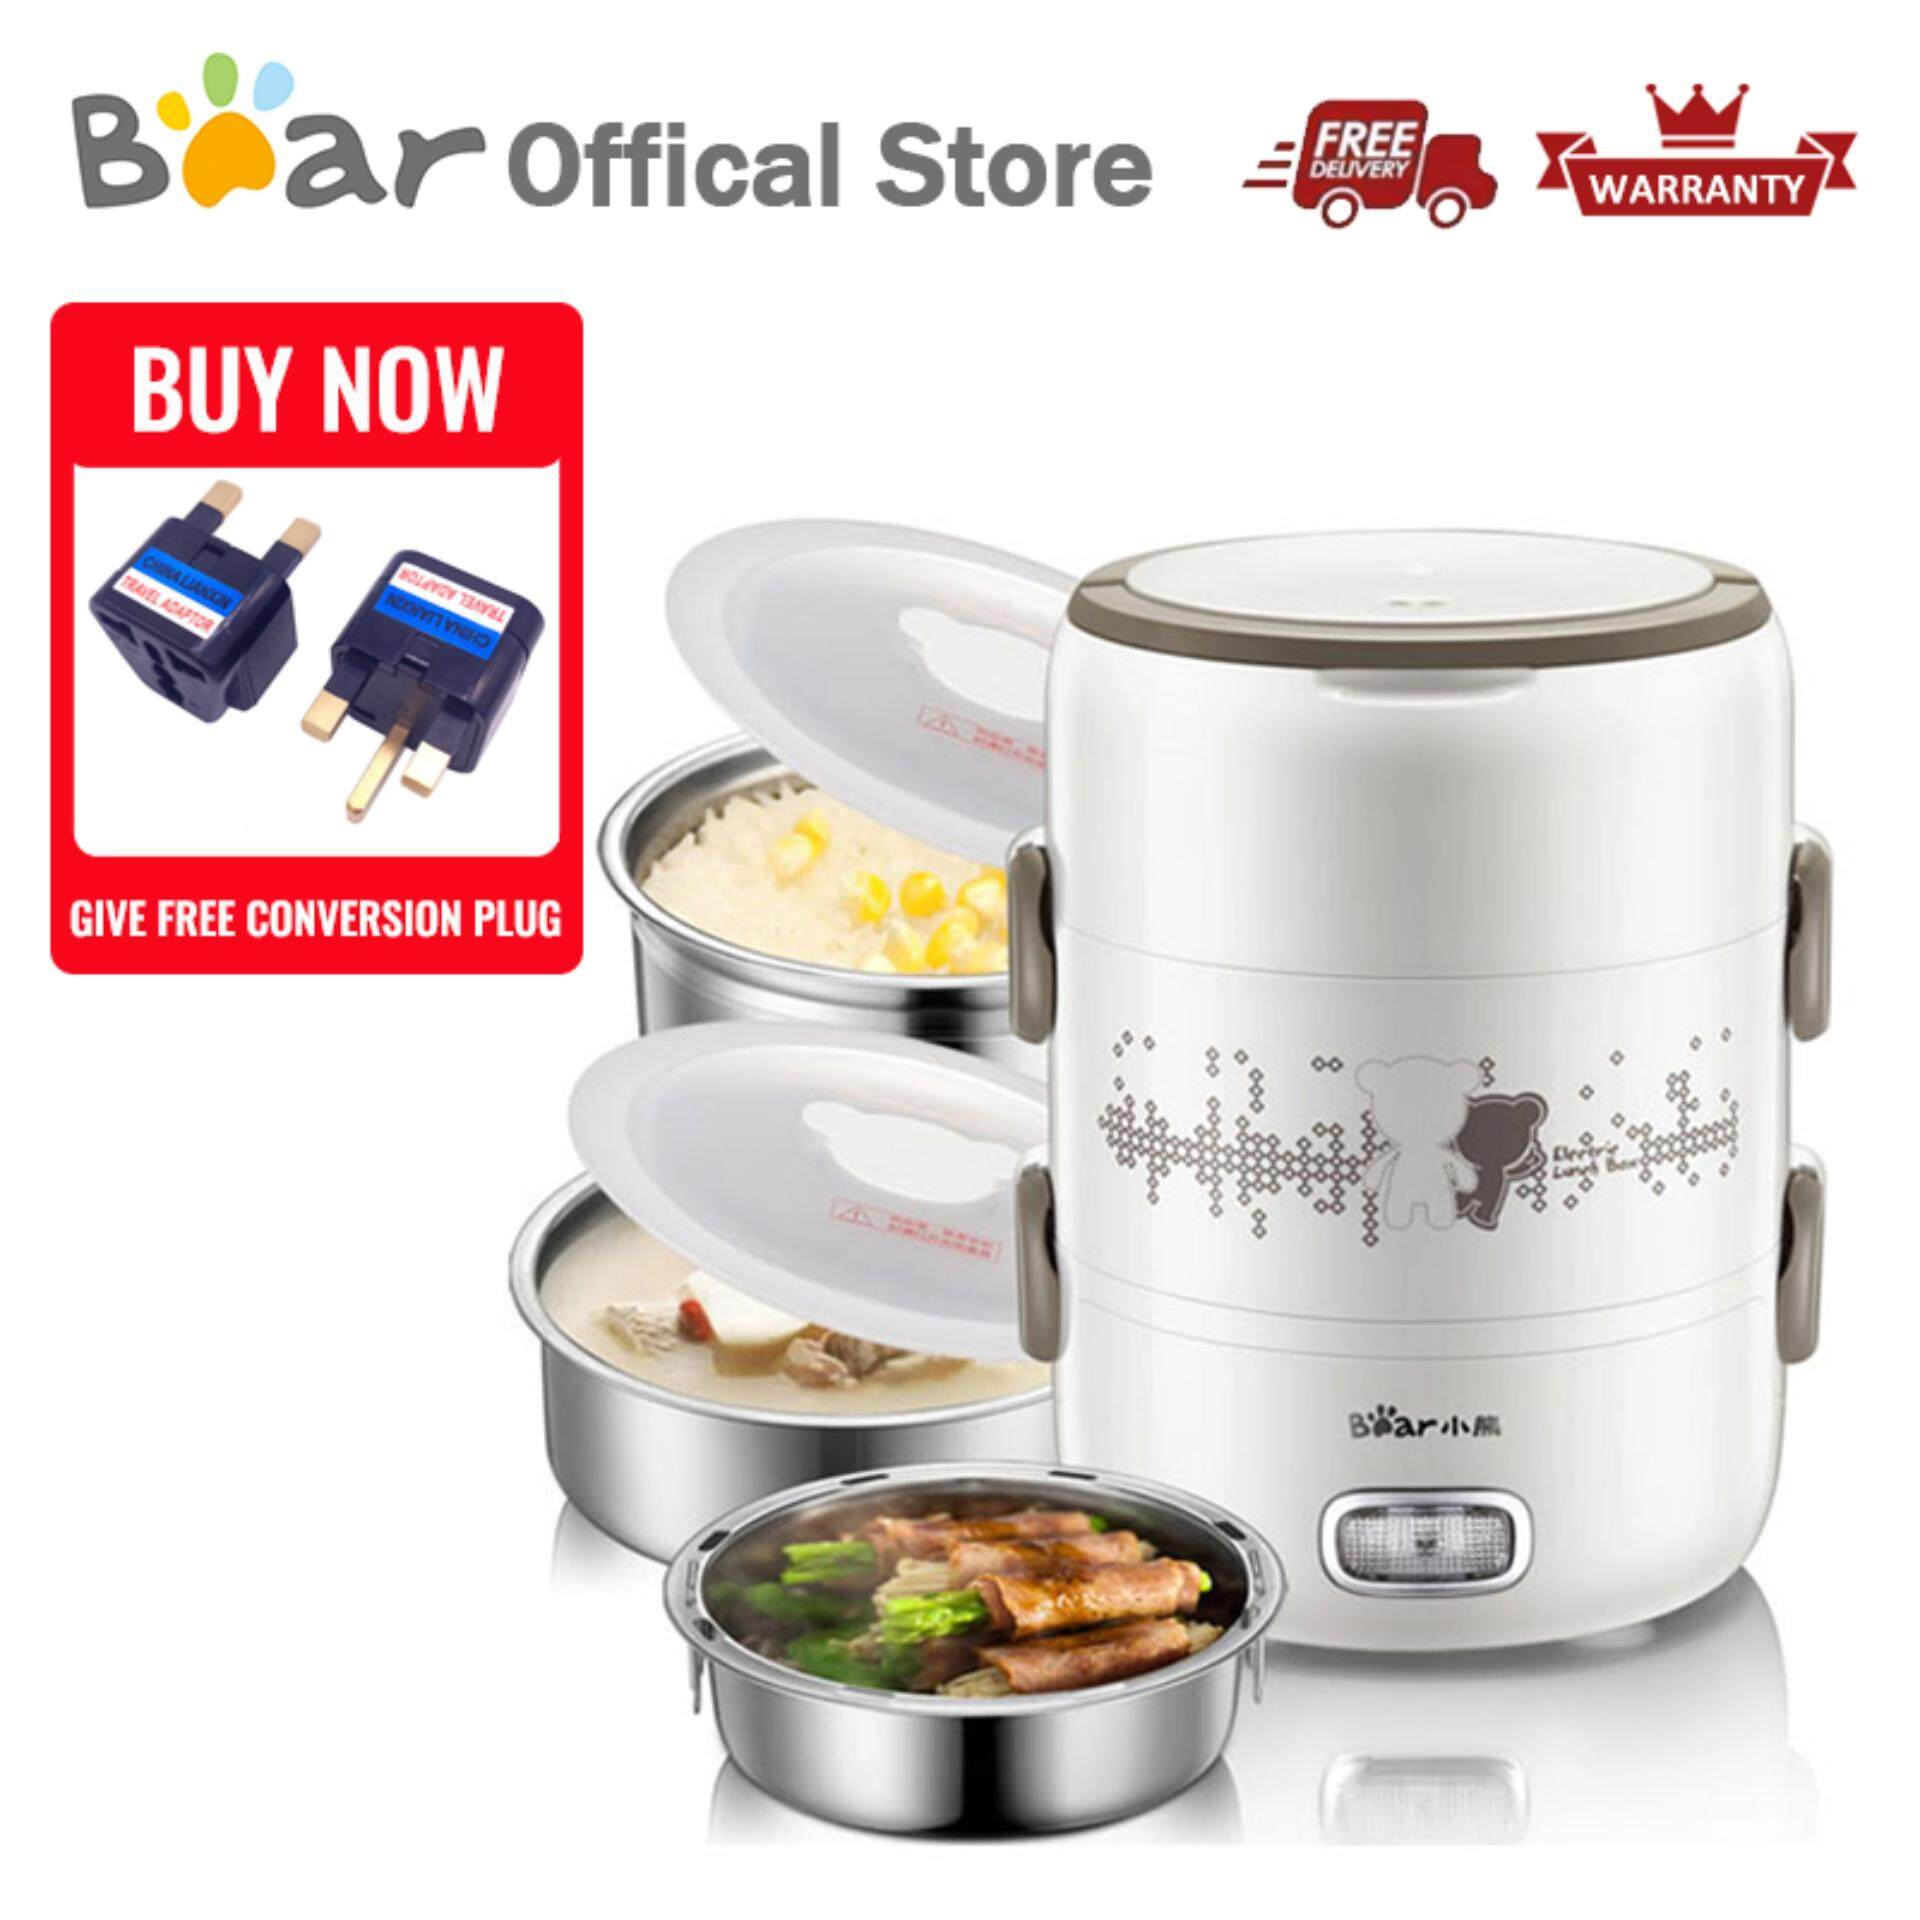 a05e5dc8d5a Bear Multi-Function Electric Heating Lunch Box DFH-S2358 2.0L 3 Tier  Steaming